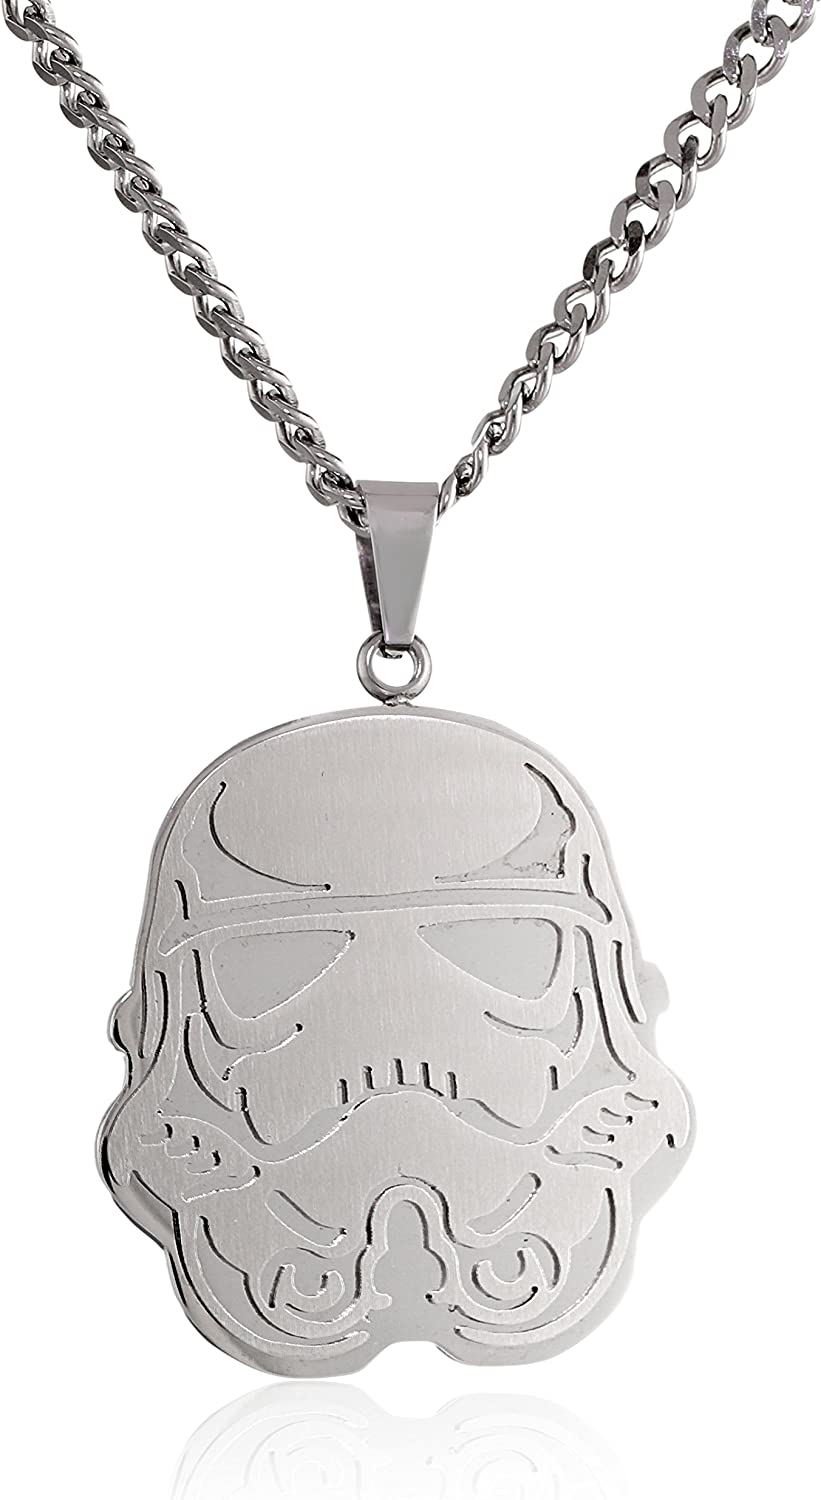 Star Wars Jewelry Unisex Storm Trooper Stainless Steel Chain Pendant Necklace, 24